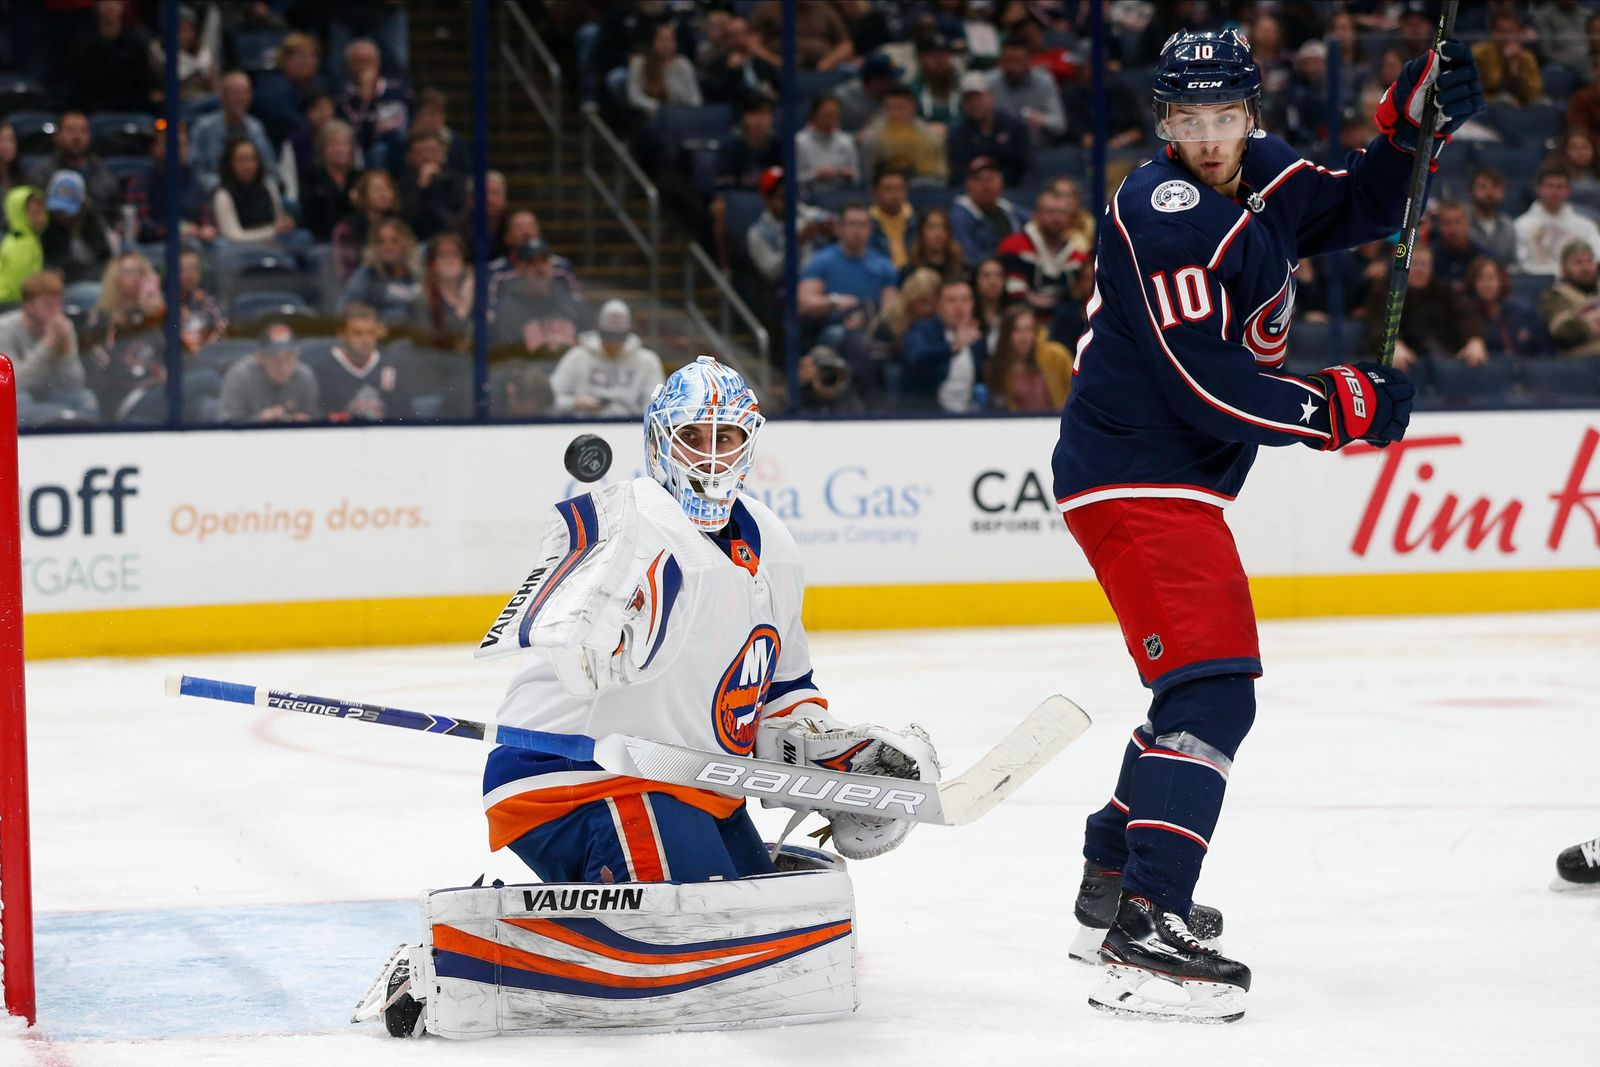 New York Islanders' Thomas Greiss, left, of Germany, makes a save in front of Columbus Blue Jackets' Alexander Wennberg, of Sweden, during the second period of an NHL hockey game Saturday, Oct. 19, 2019, in Columbus, Ohio. (AP Photo/Jay LaPrete)